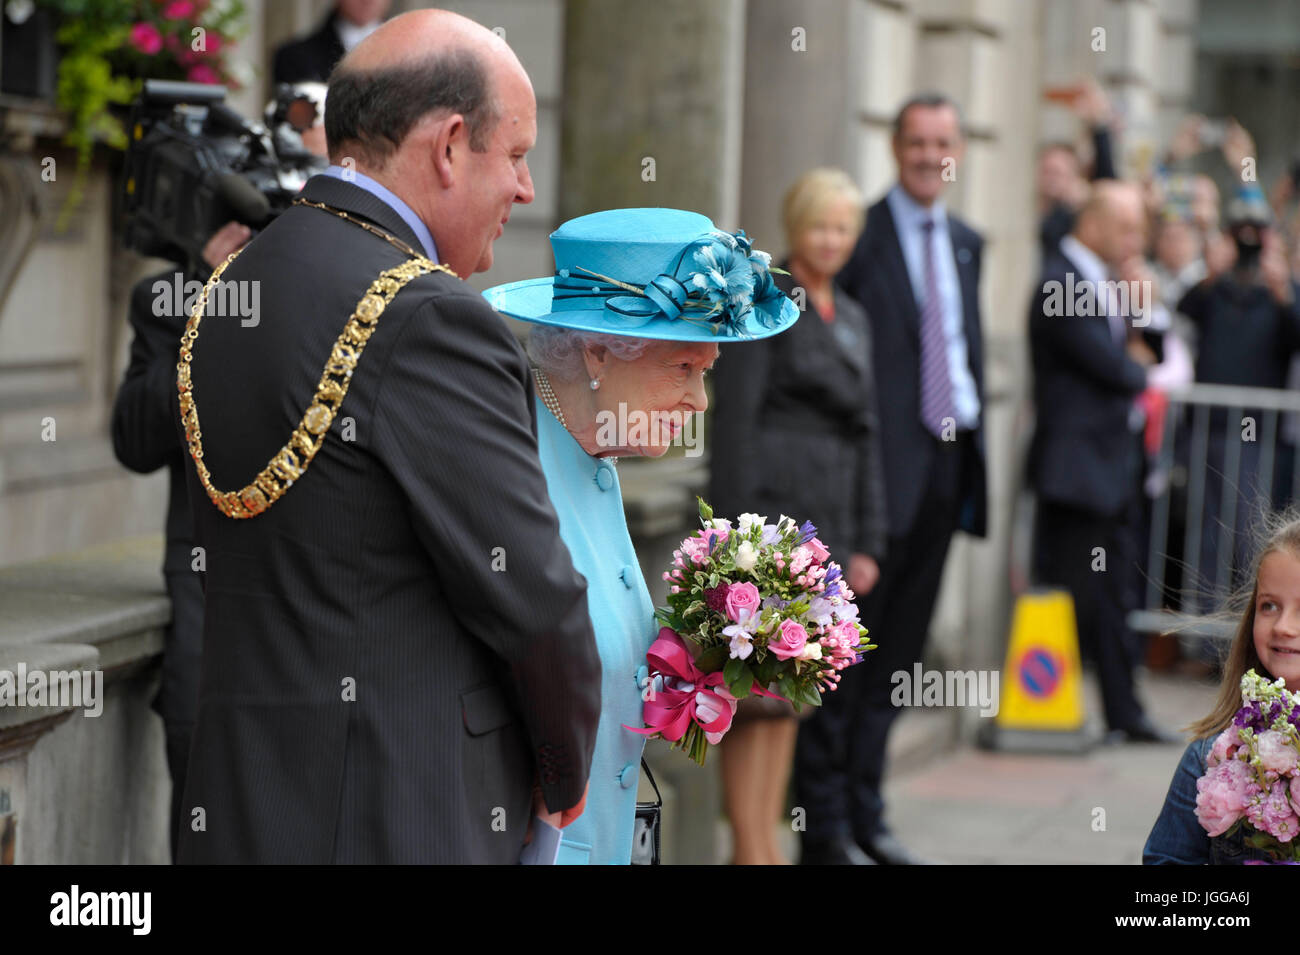 Edinburgh, Royaume-Uni. 07Th Juillet, 2017. La Reine se rend à la Société royale d'Édimbourg, Photo Stock